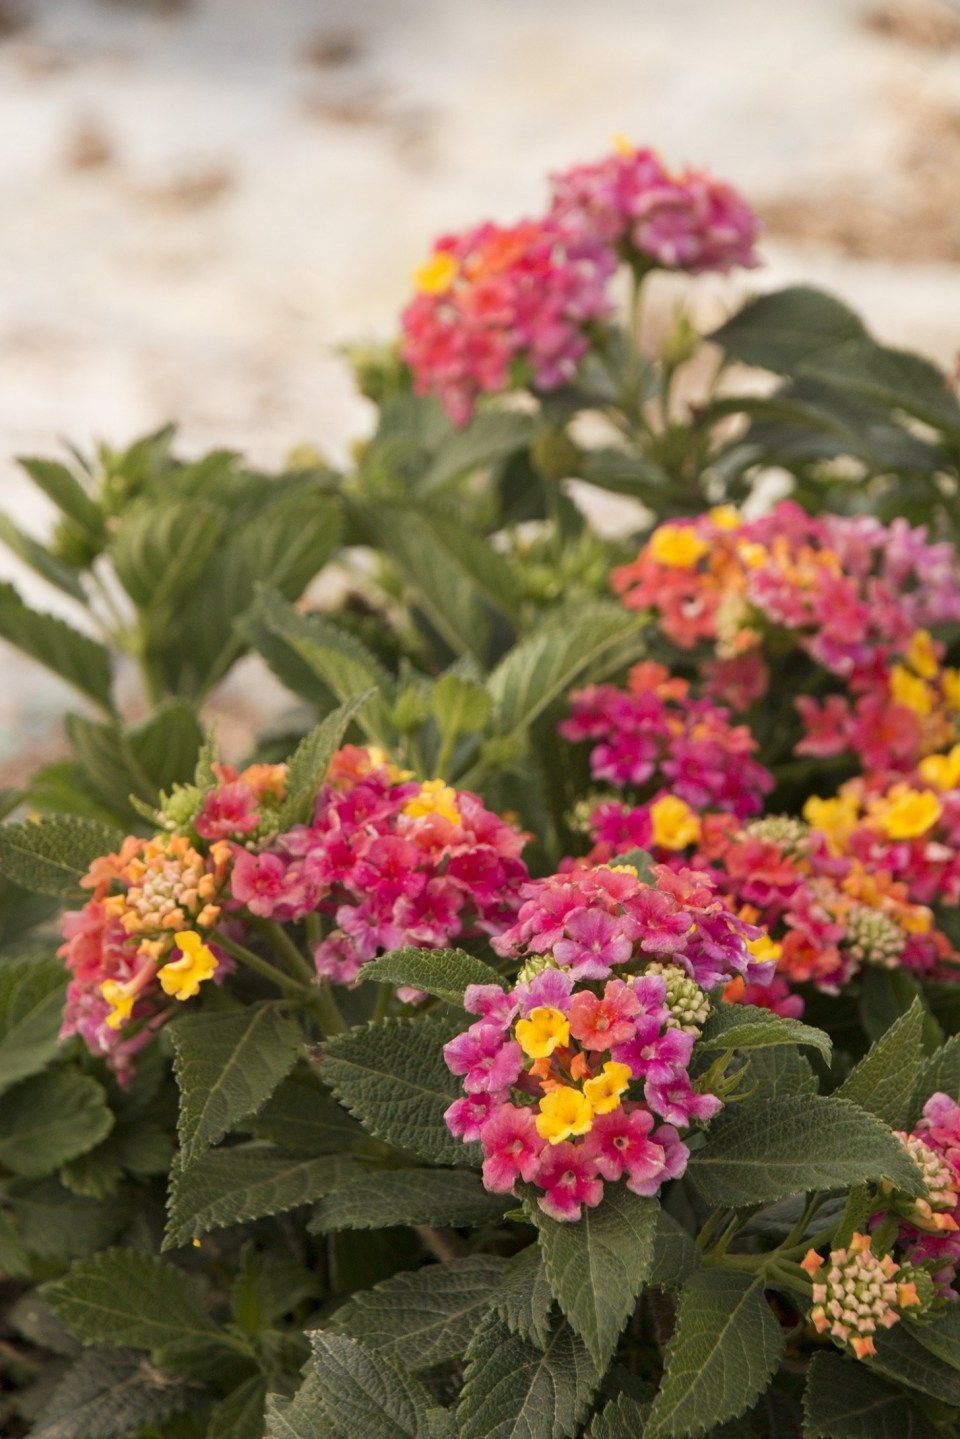 9 Ways On How To Get The Most From This Lantana Plant North Texas With Images Lantana Healthy Garden